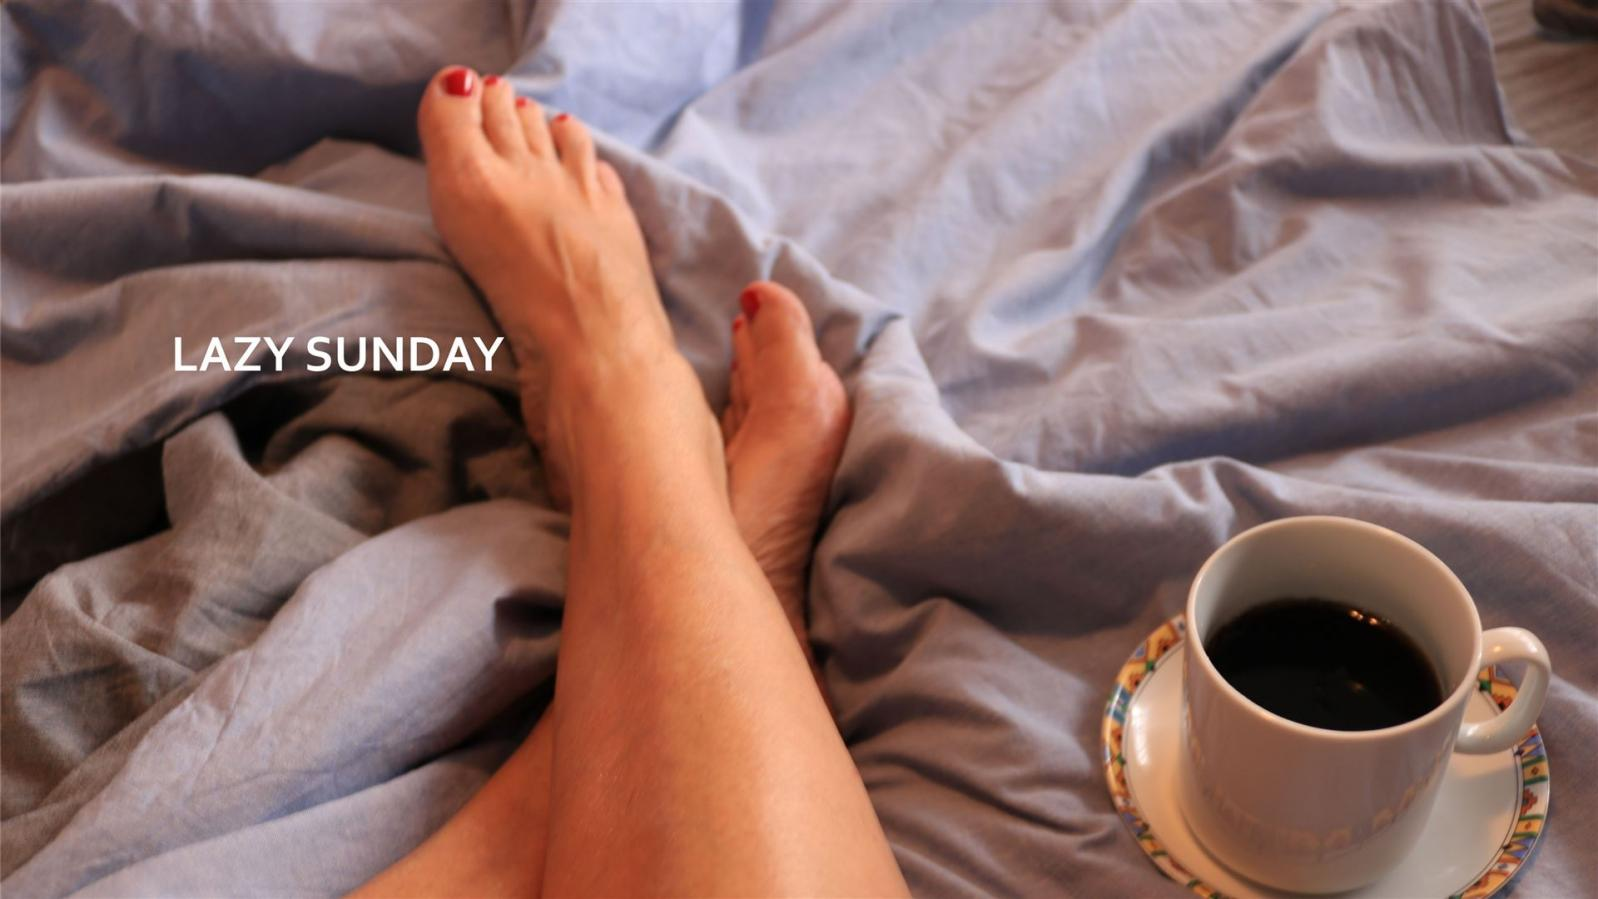 Lazy Sunday - Our Reloaded Package for a New Week